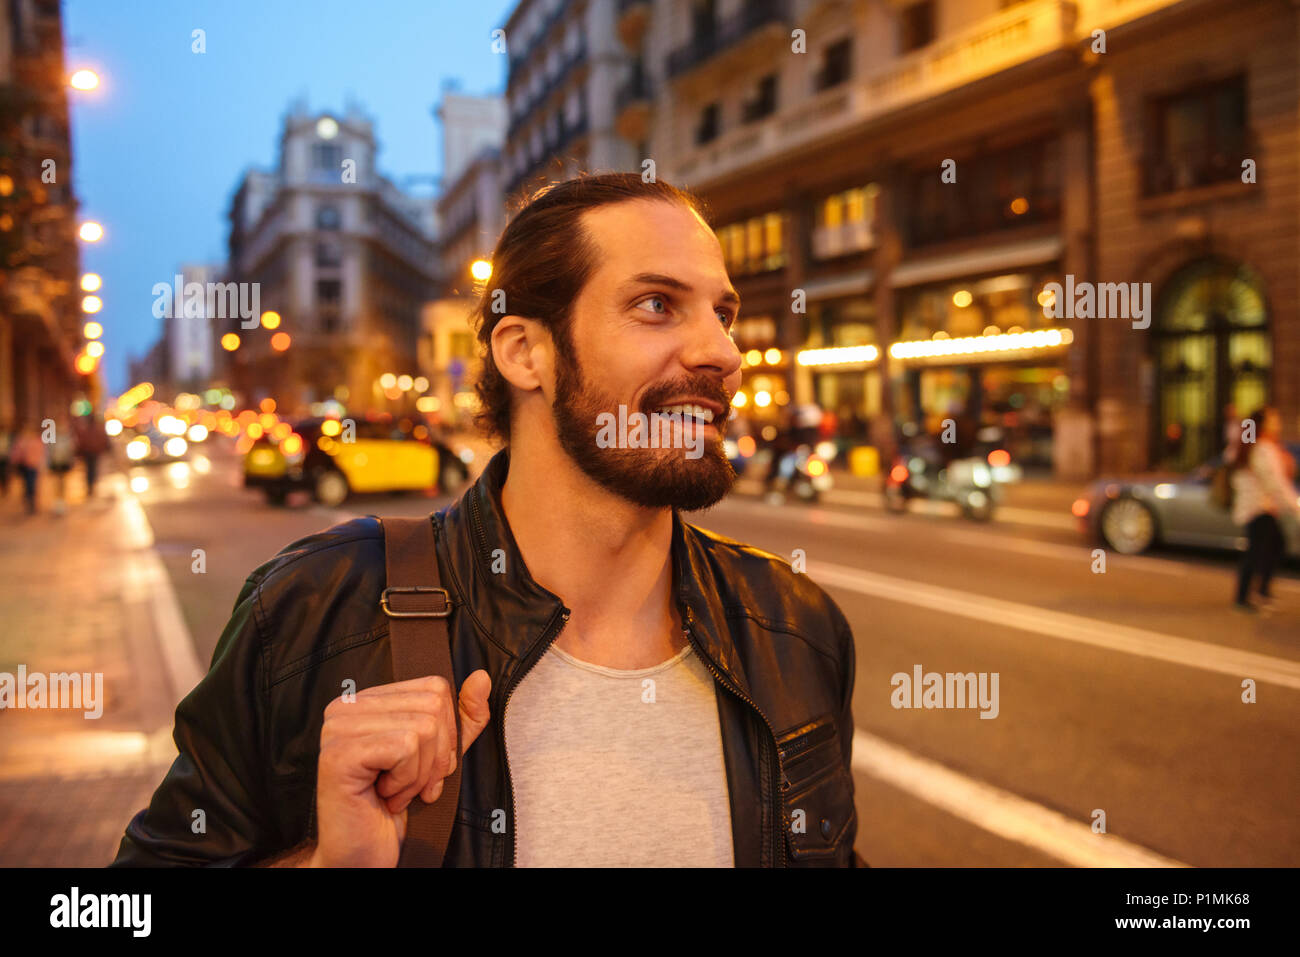 Portrait of smiling european man with tied hair looking aside while walking through megapolis in evening - Stock Image